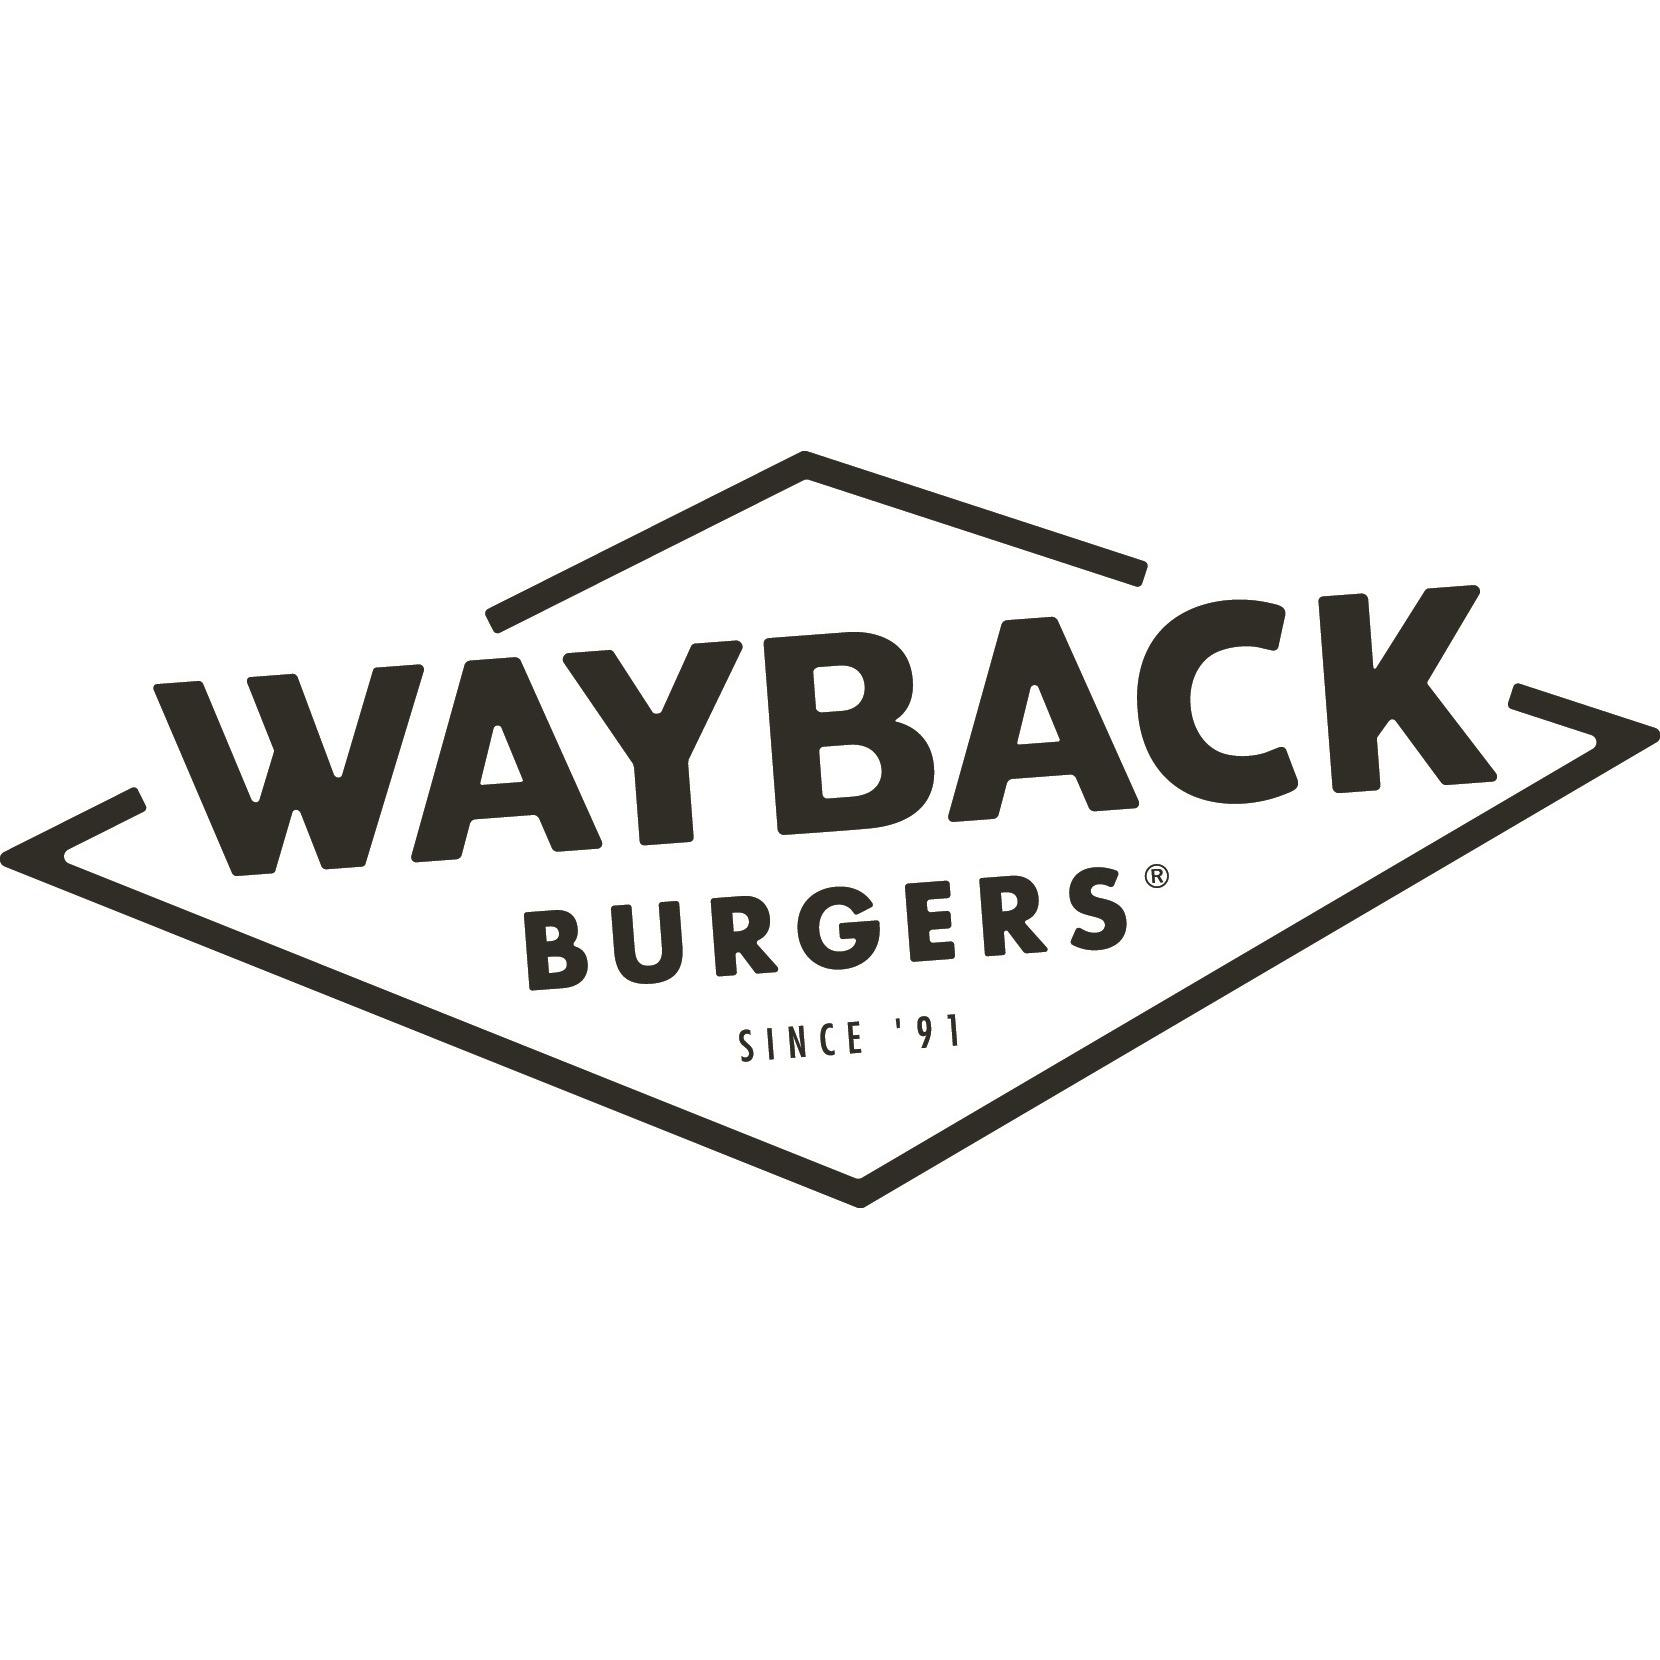 Wayback Burgers - Daytona Beach, FL 32114 - (386)238-9904 | ShowMeLocal.com